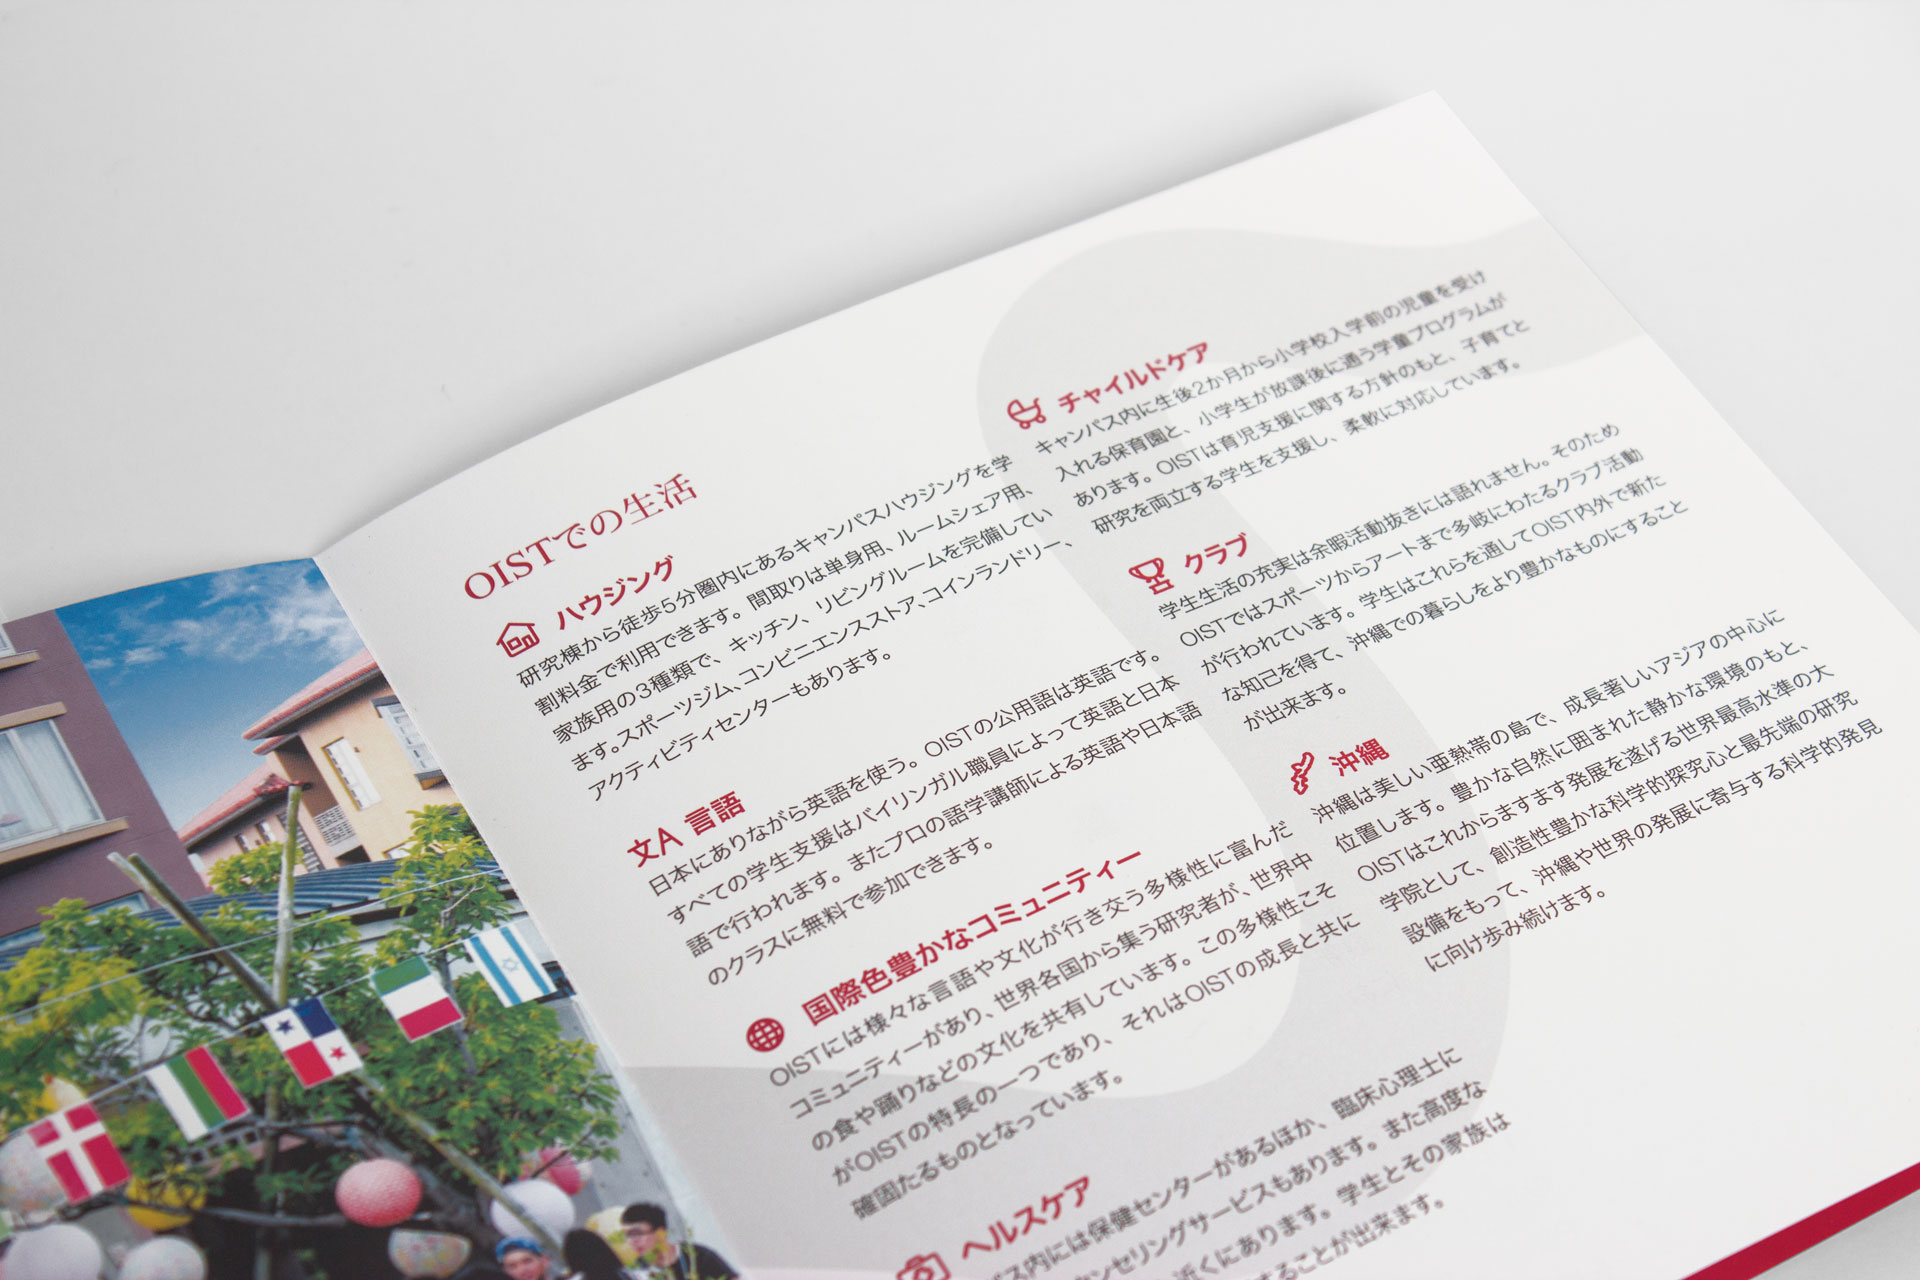 Leporello pamphlet for Okinawa Institute of Science and Technology (OIST) - PhD and Research Internships